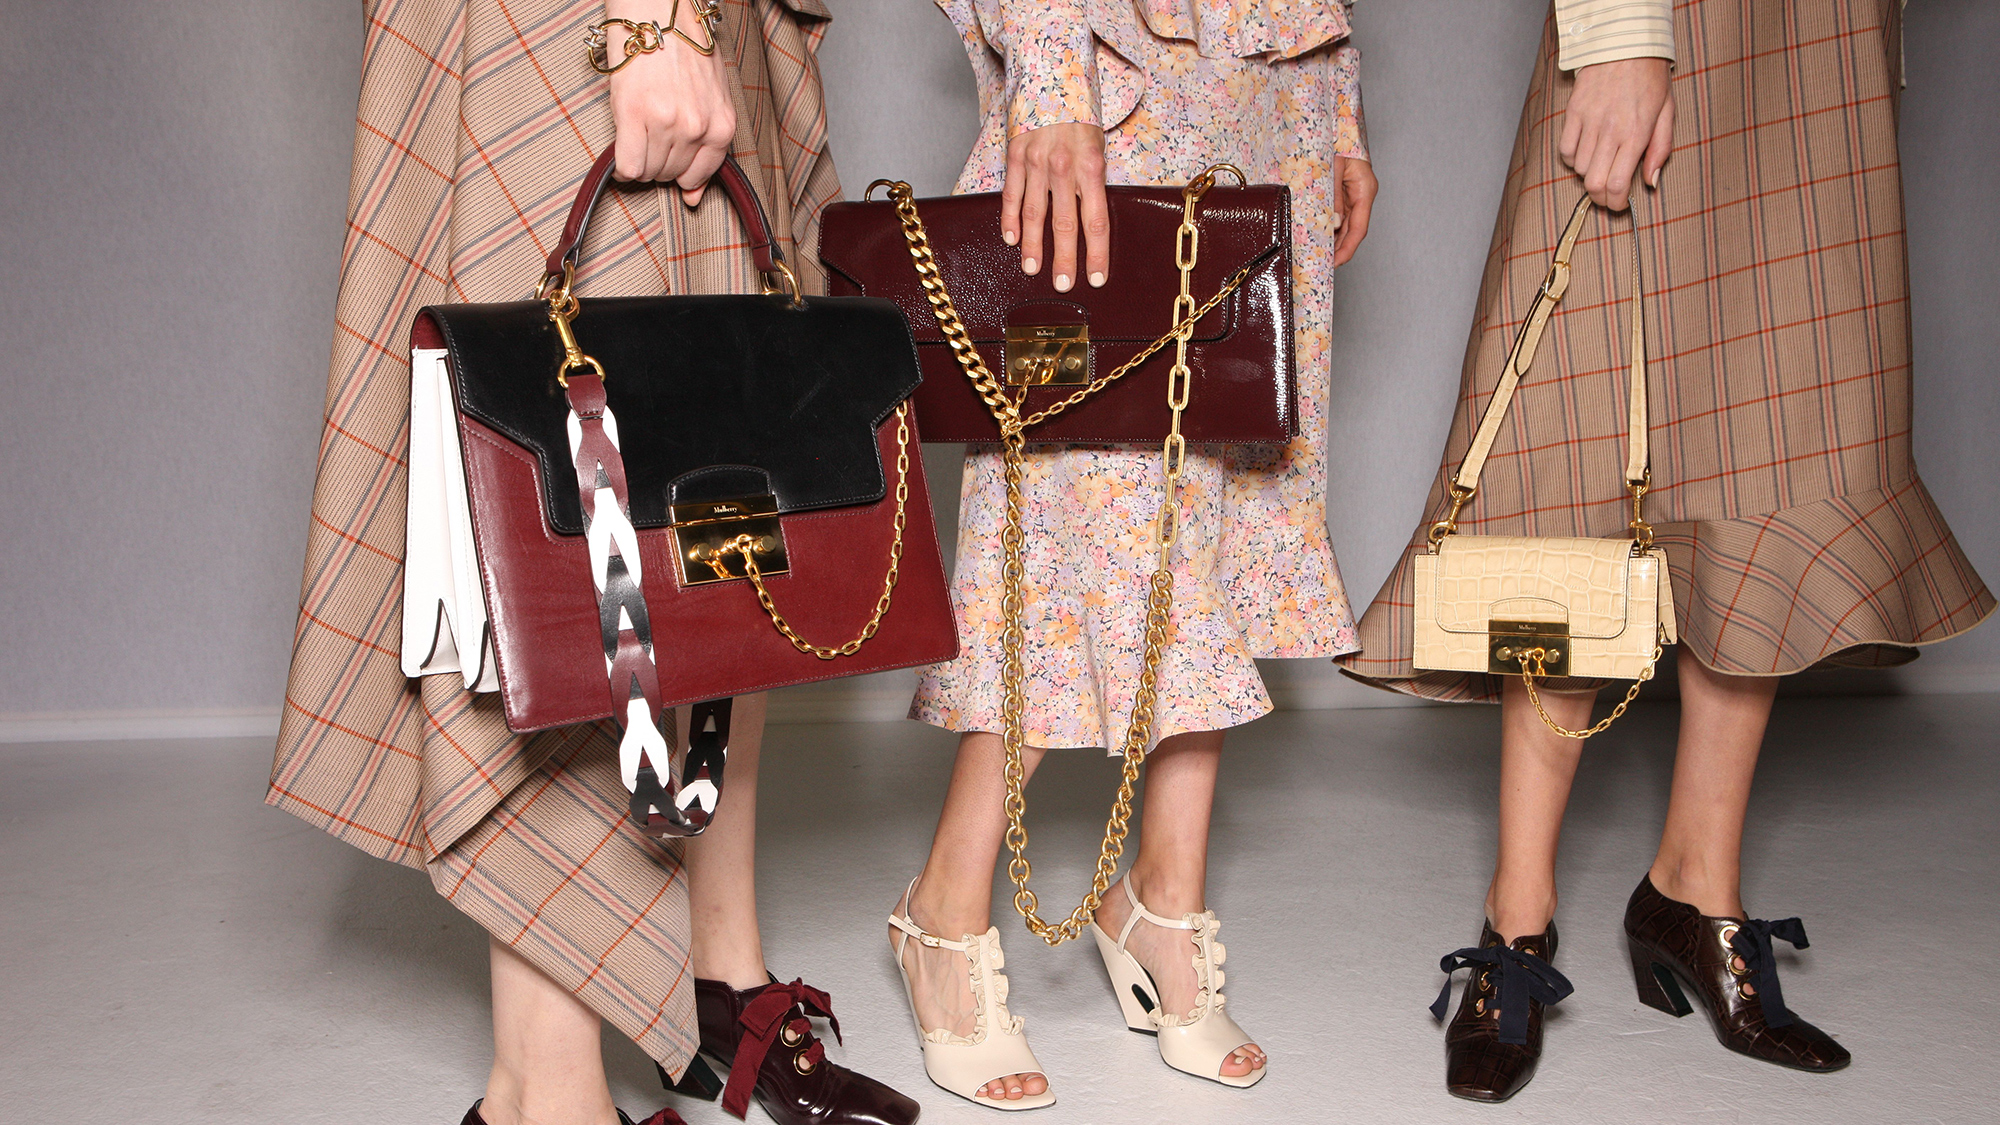 afd4ba638e 5 Things You Didn t Know About Mulberry Handbags